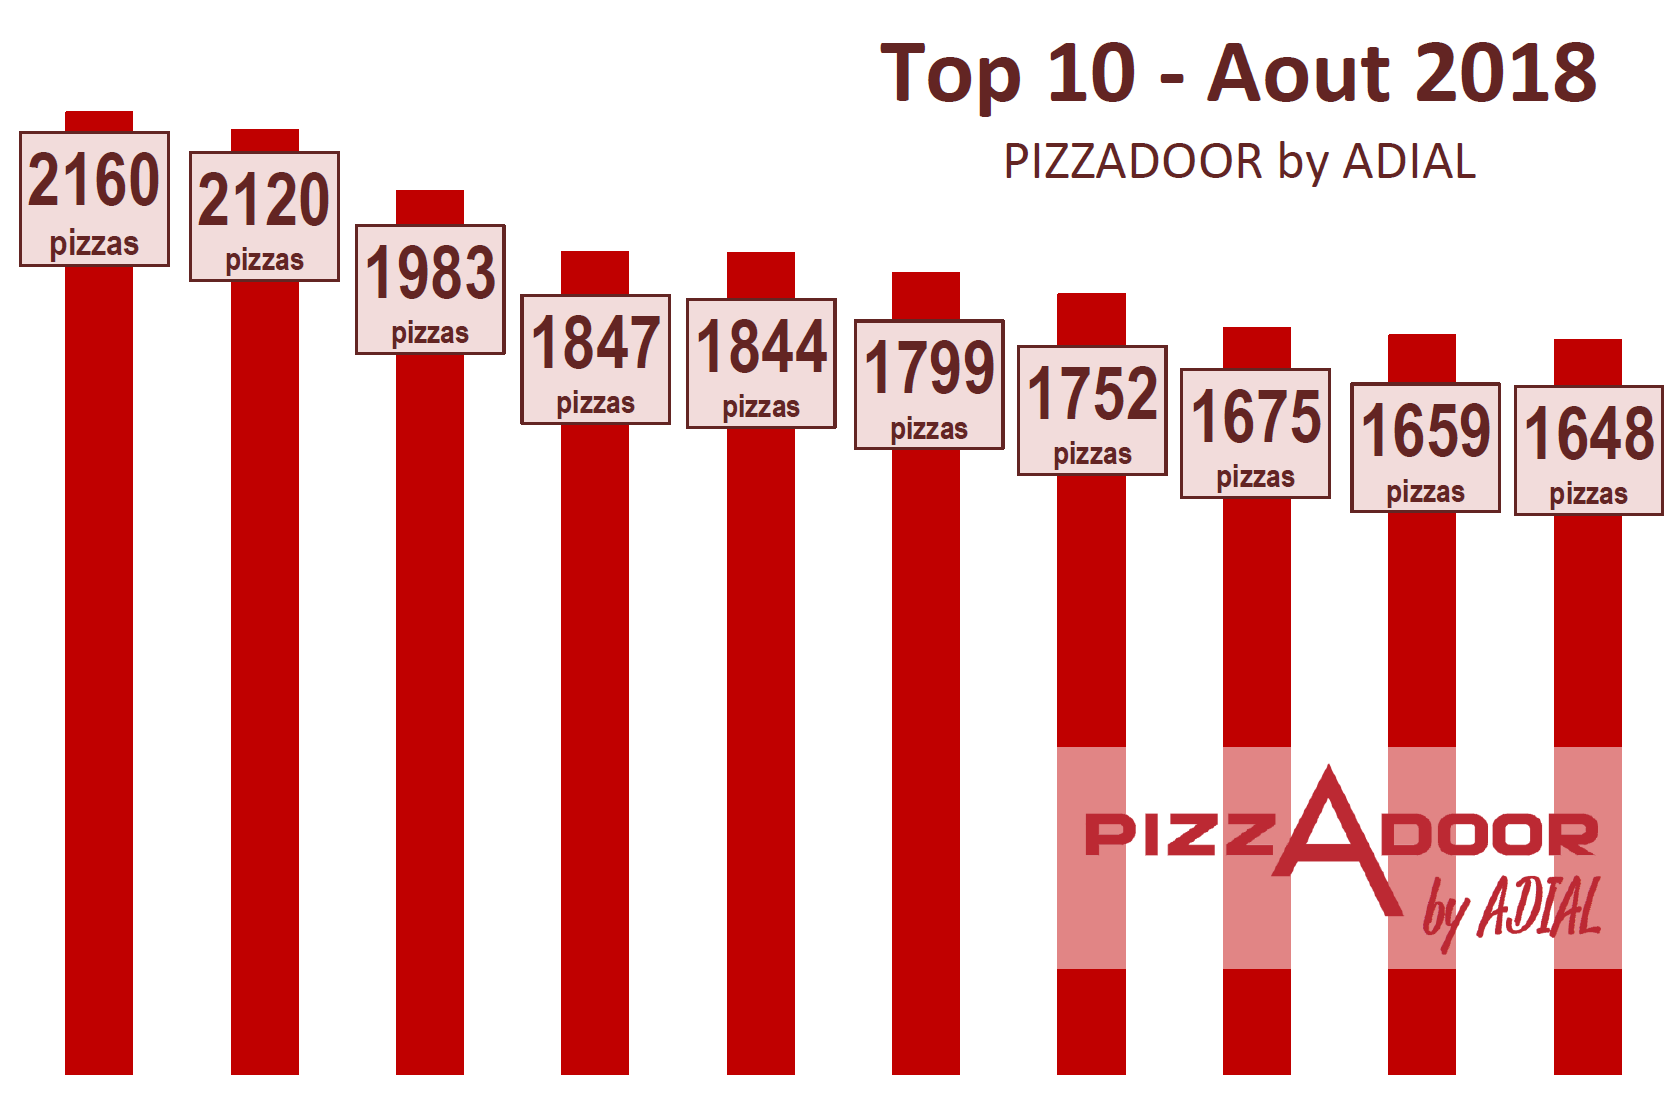 Le top 10 PIZZADOOR by ADIAL Aout 2018